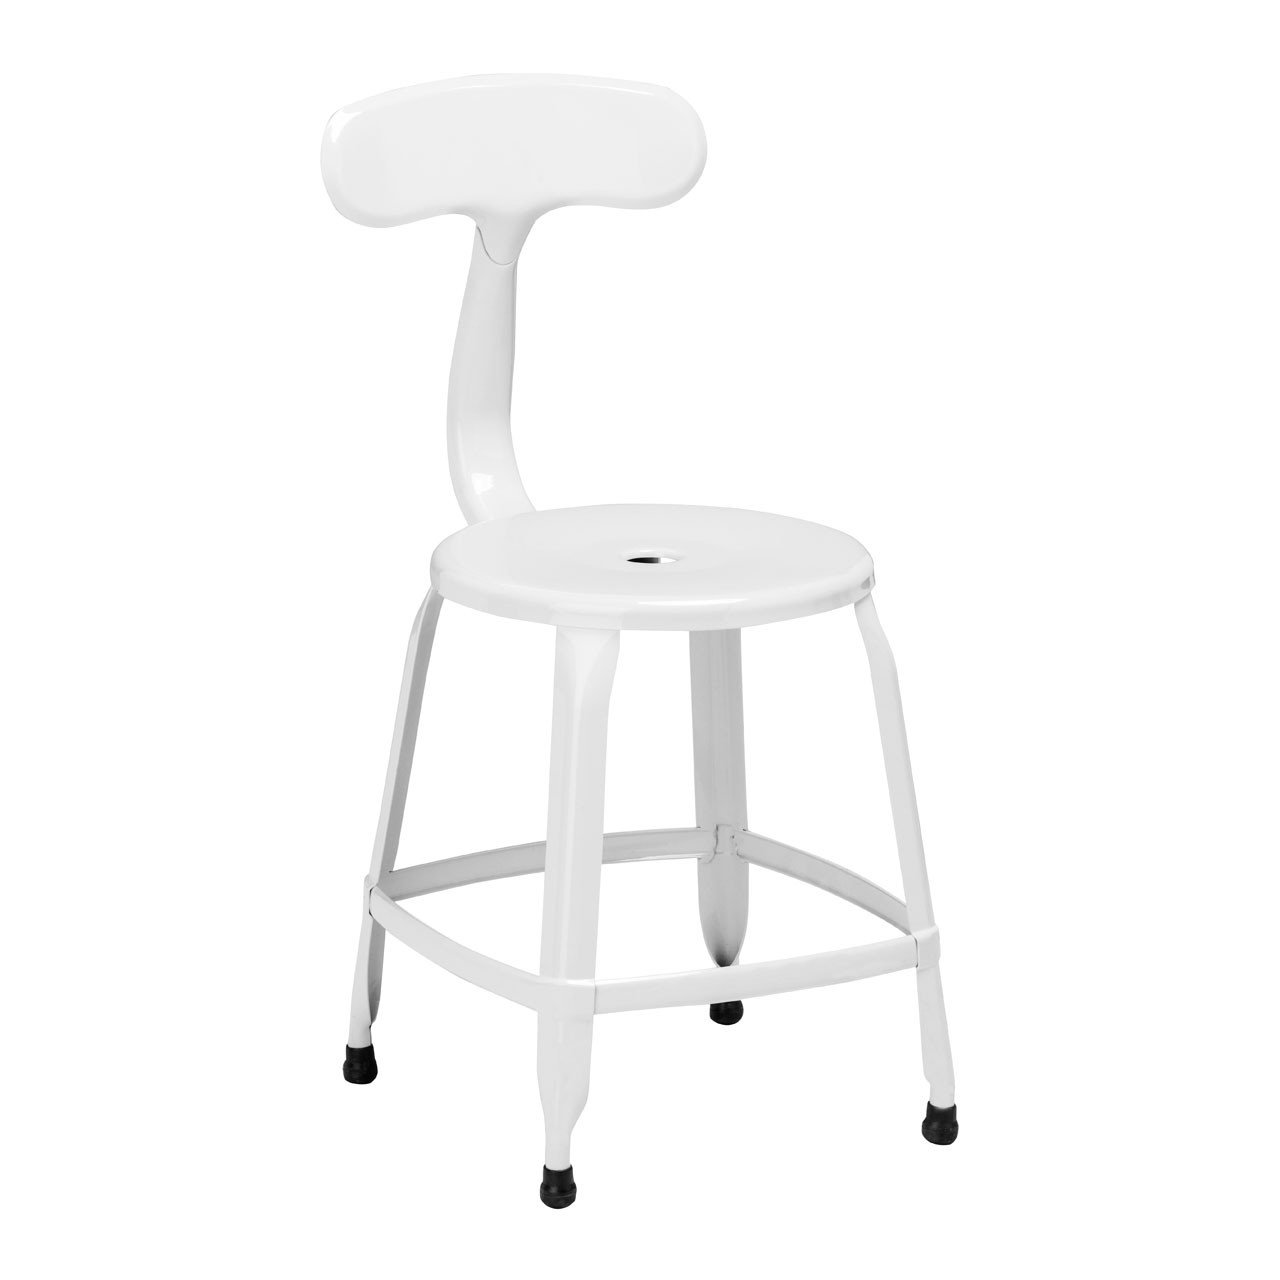 4 x Disc Chair White Powder Coated Metal